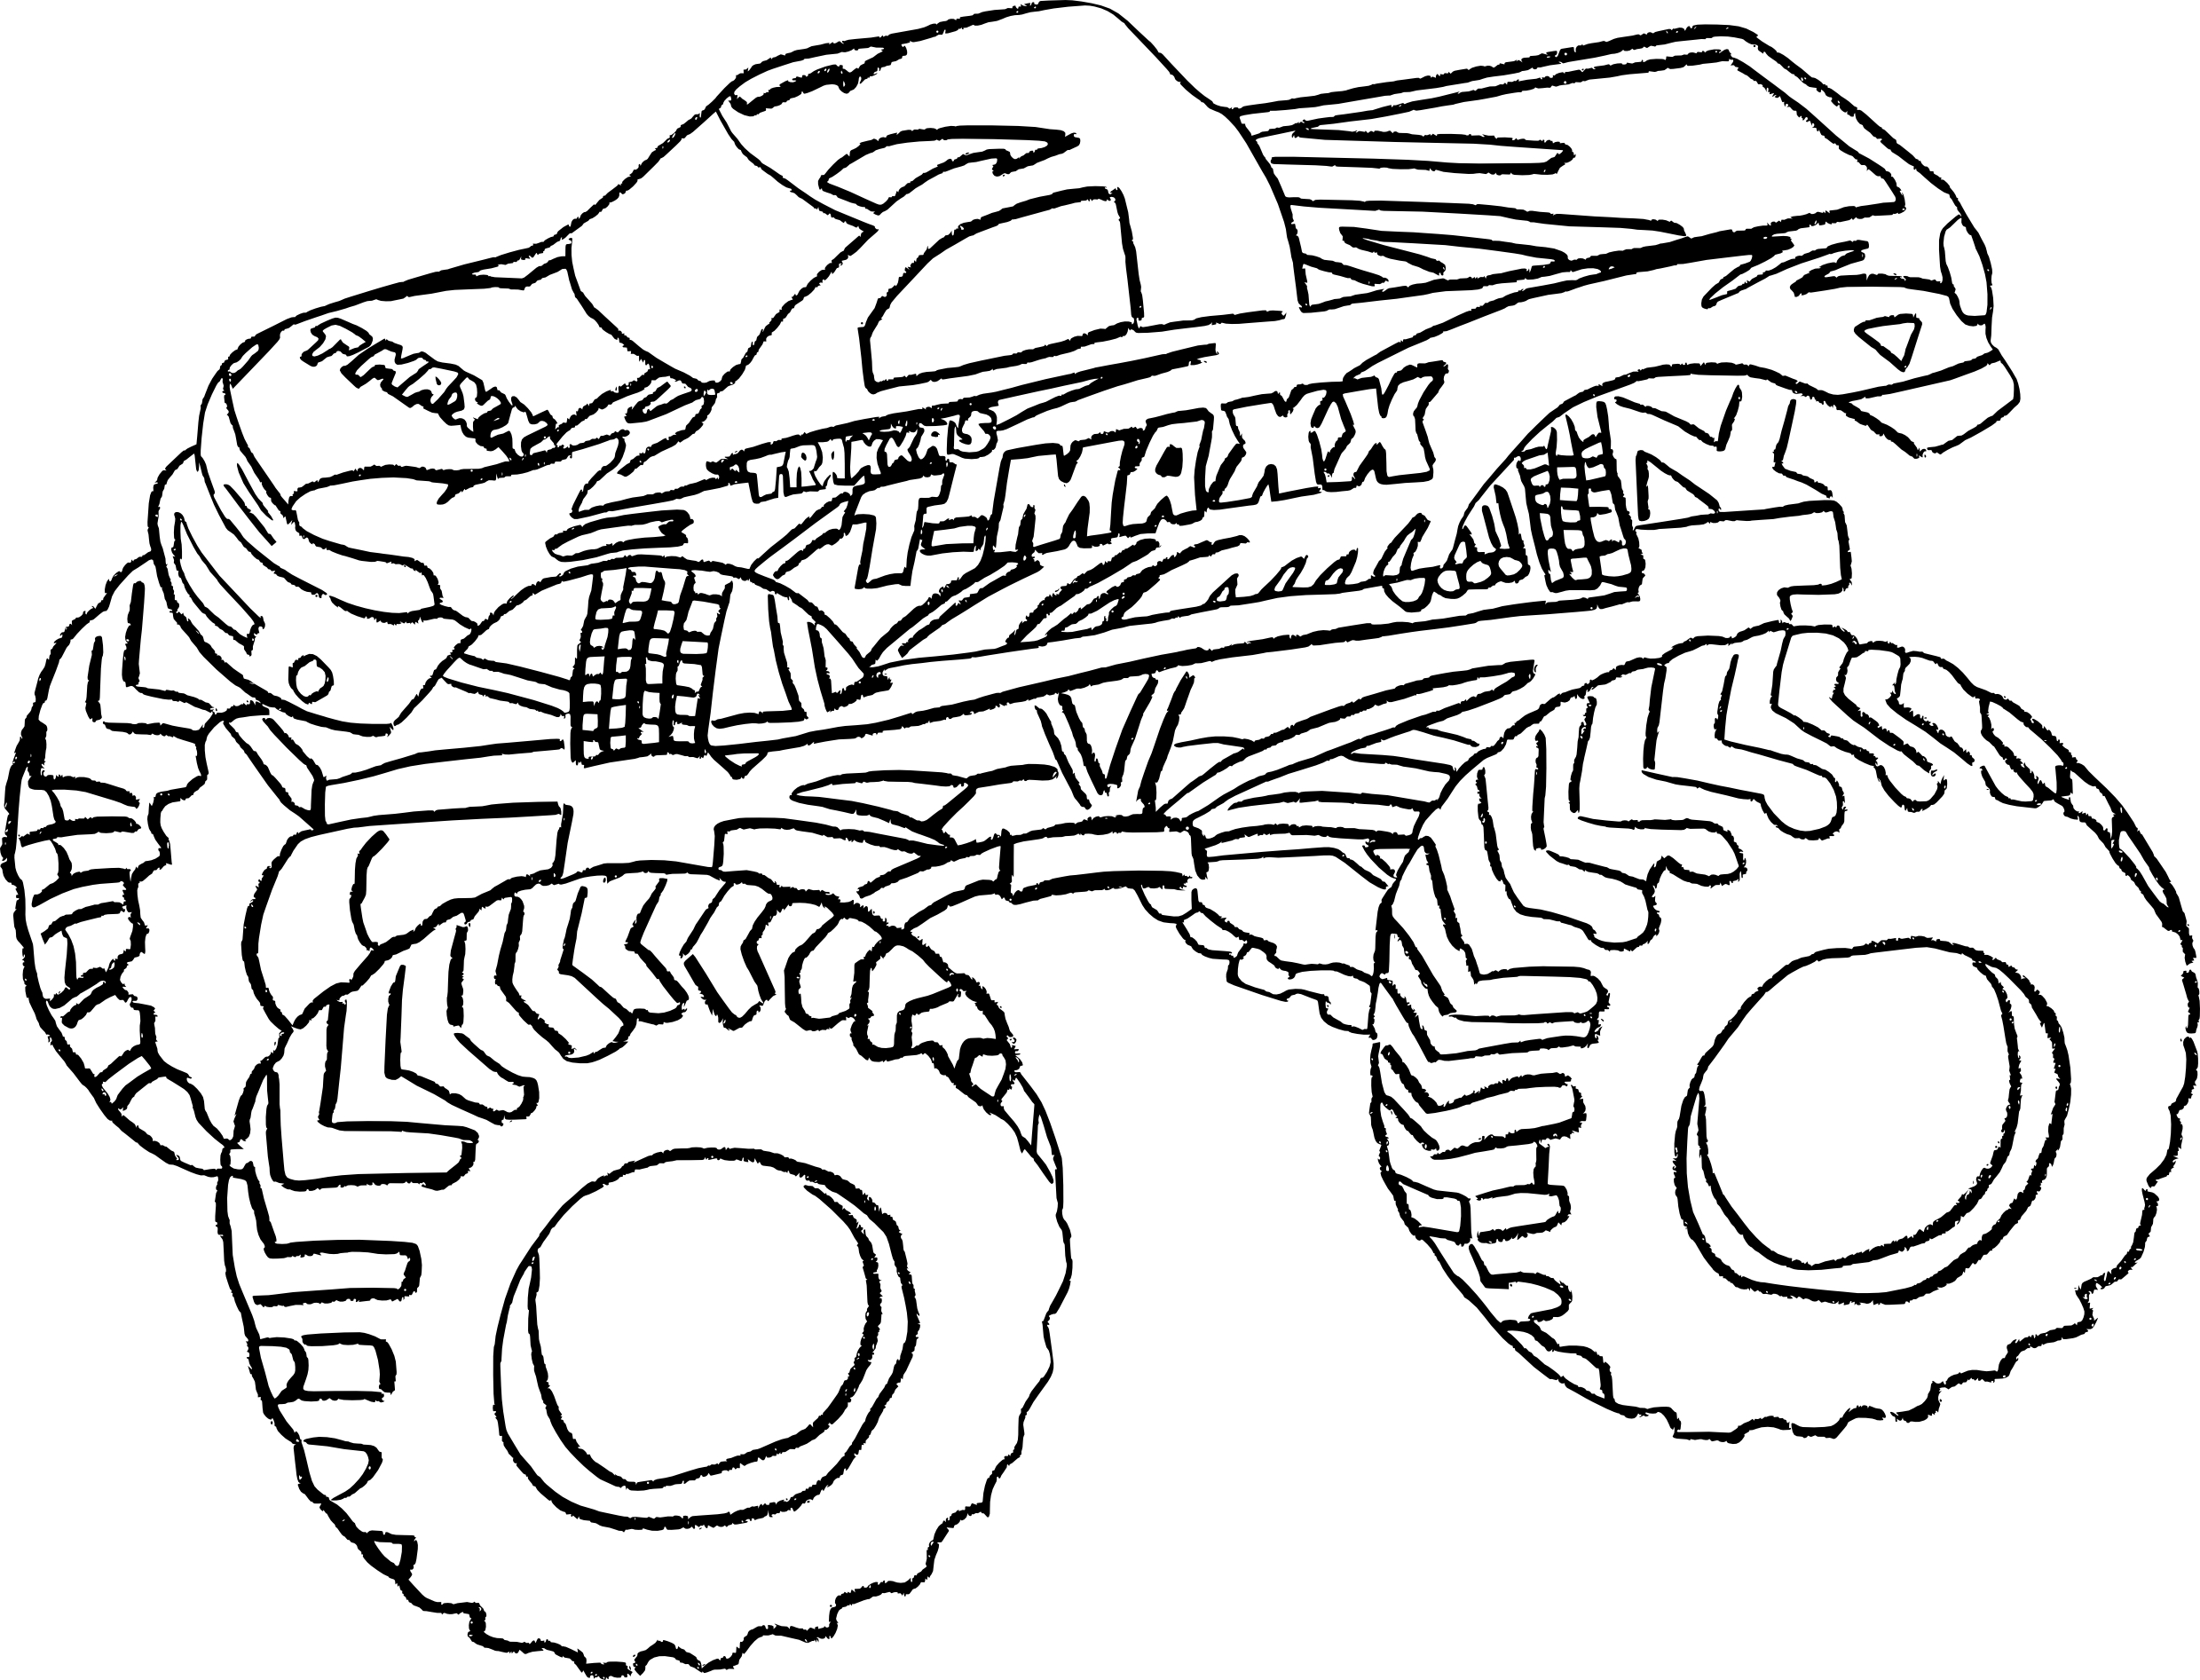 Coloriage monster truck et dessin imprimer - Dessin monster ...